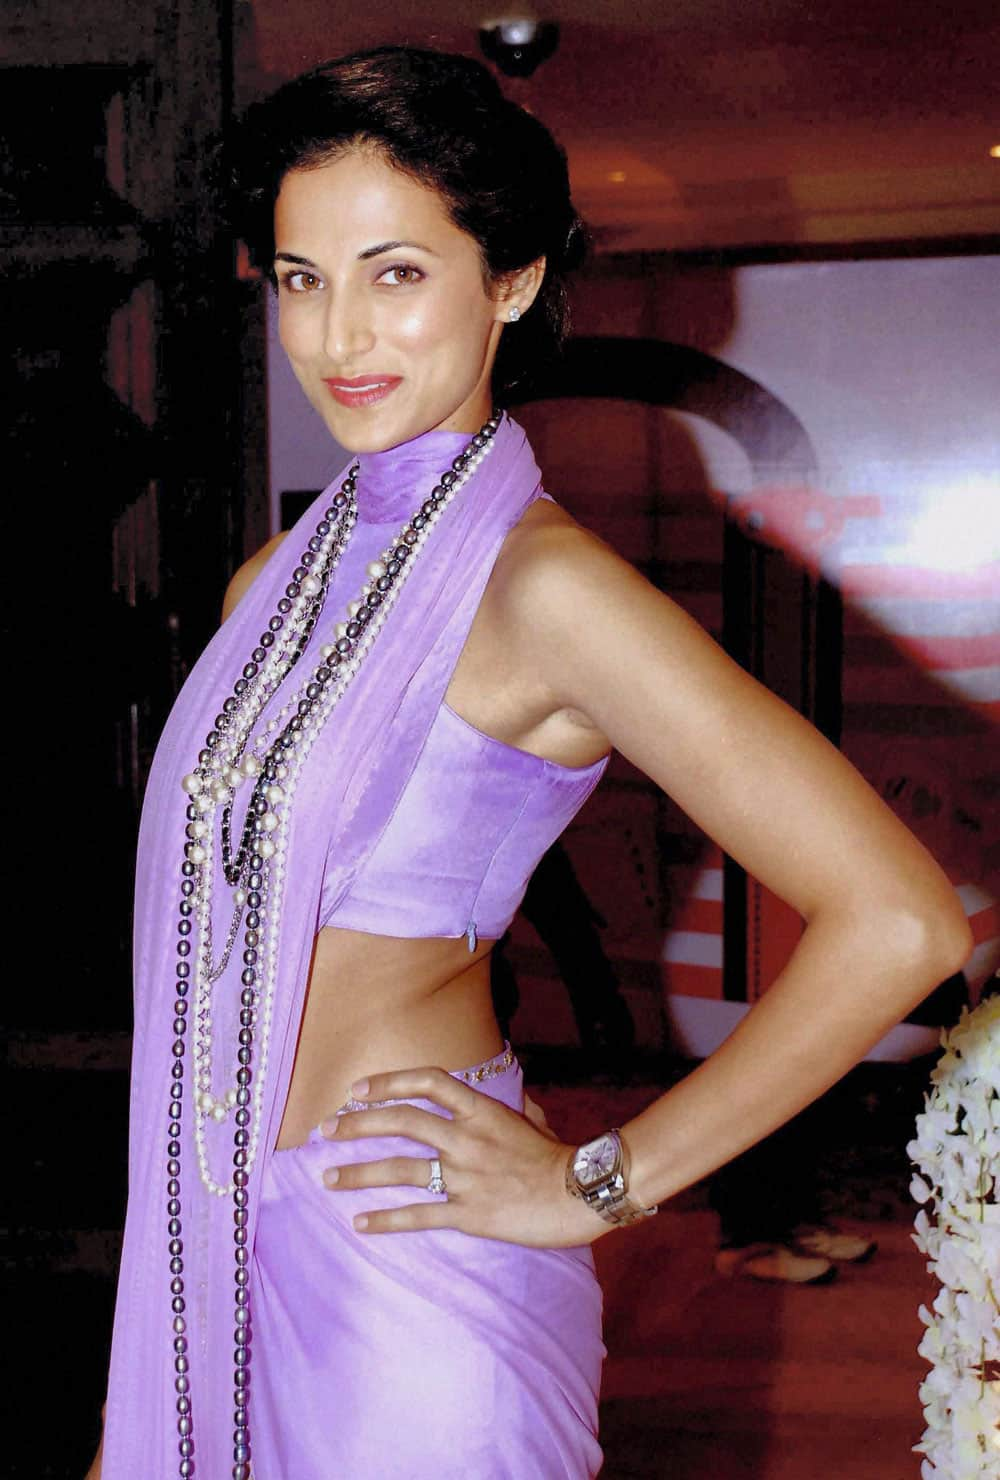 Former Mrs. India Shilpa Reddy during an event in Hyderabad.